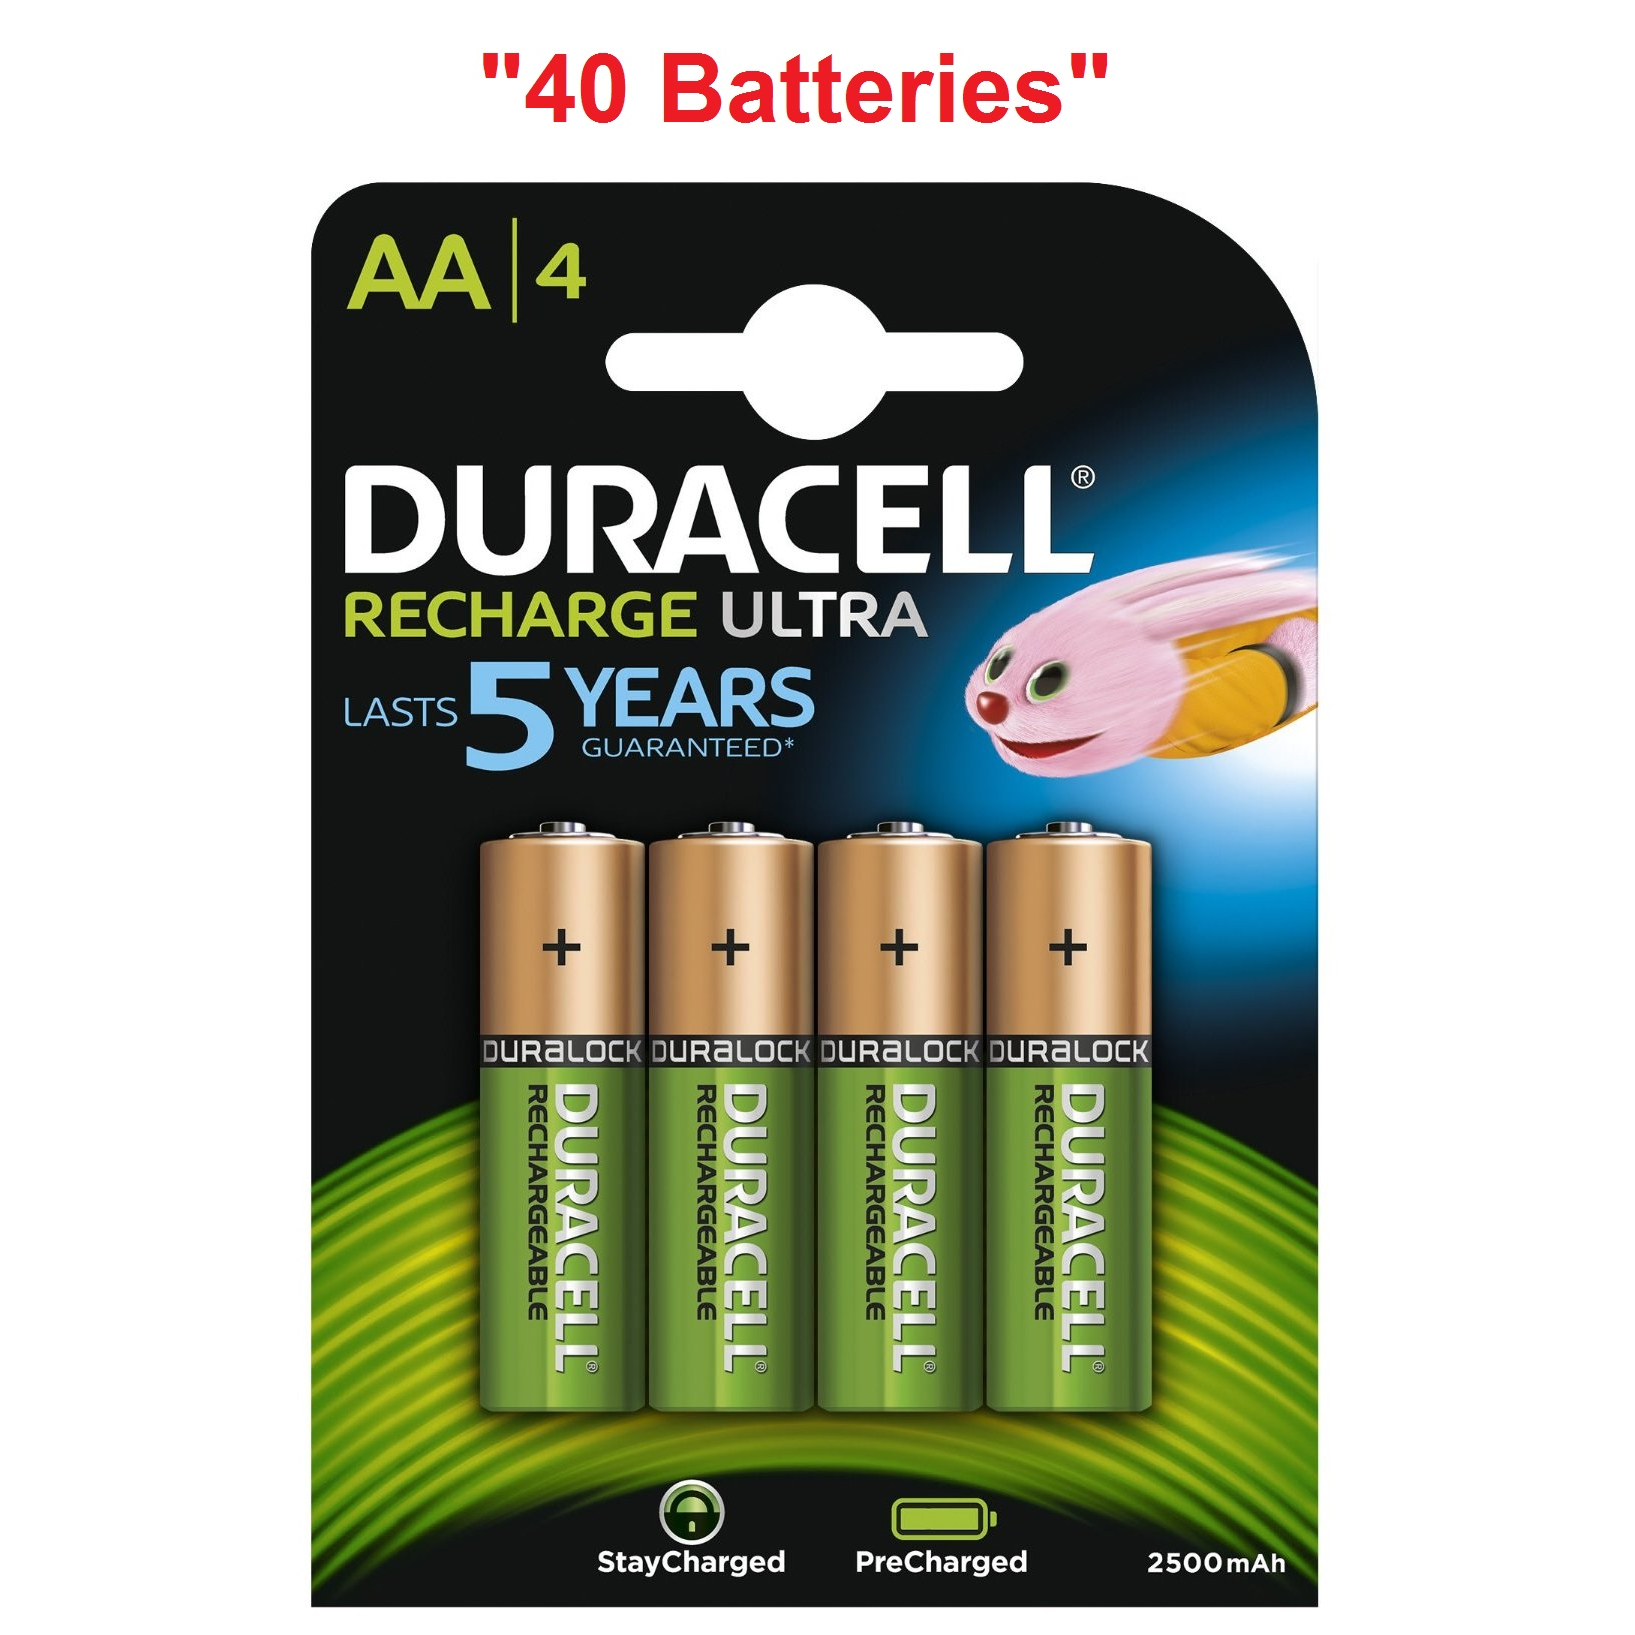 40x duracell ultra aa double a 2500mah rechargeable battery batteries 81535767 ebay. Black Bedroom Furniture Sets. Home Design Ideas